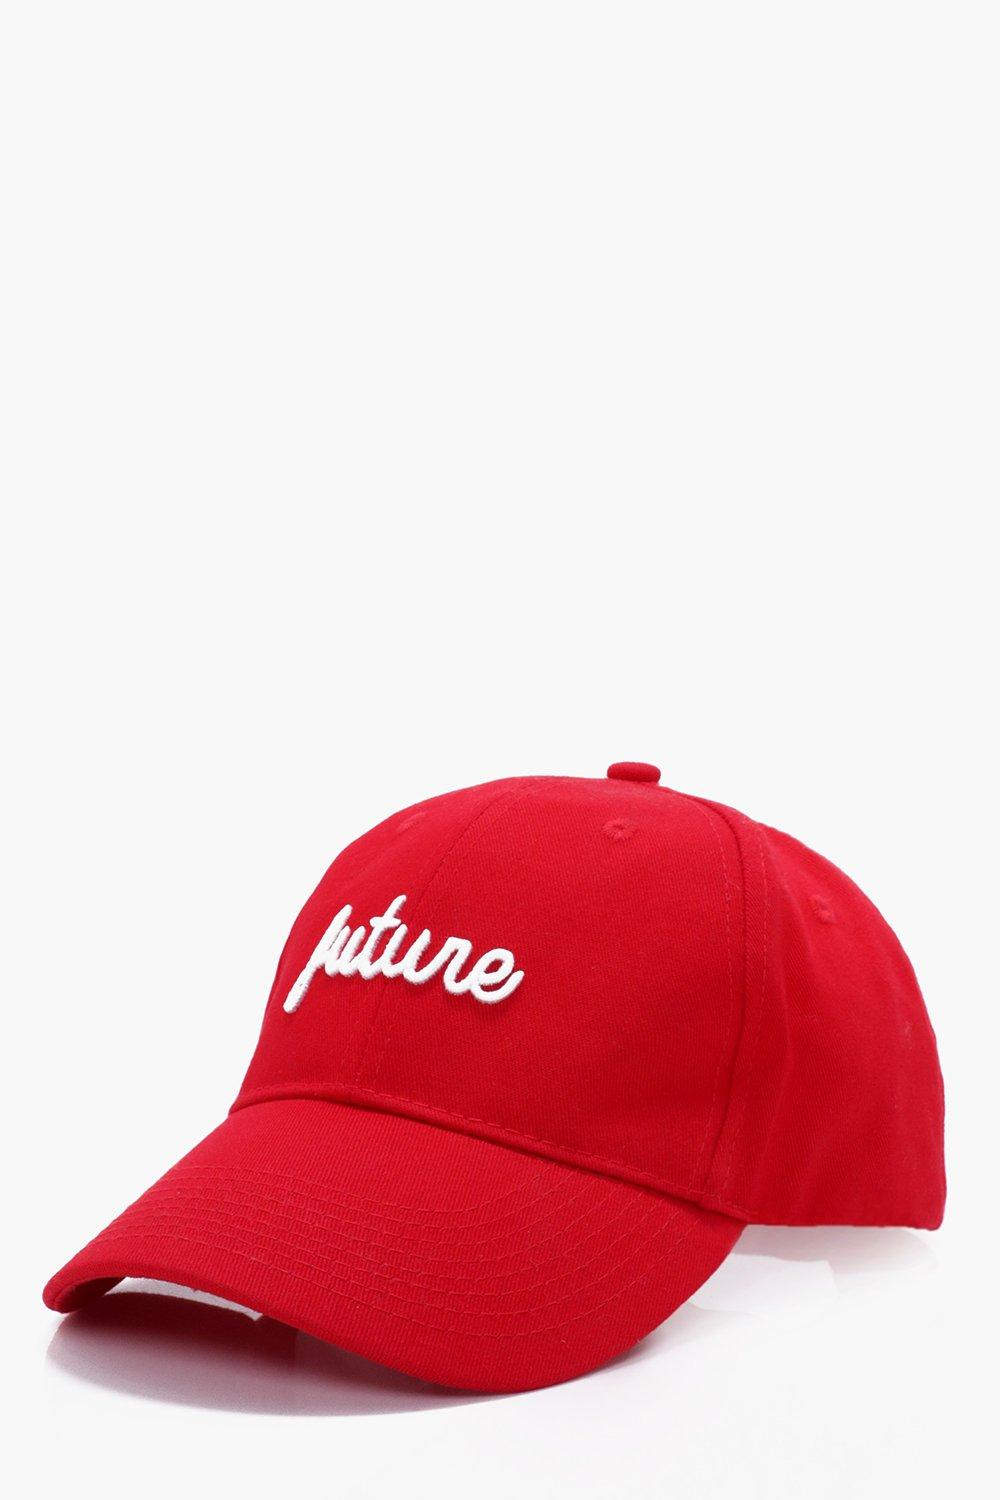 Future EmbroideCap - red - Red Future Embroidered